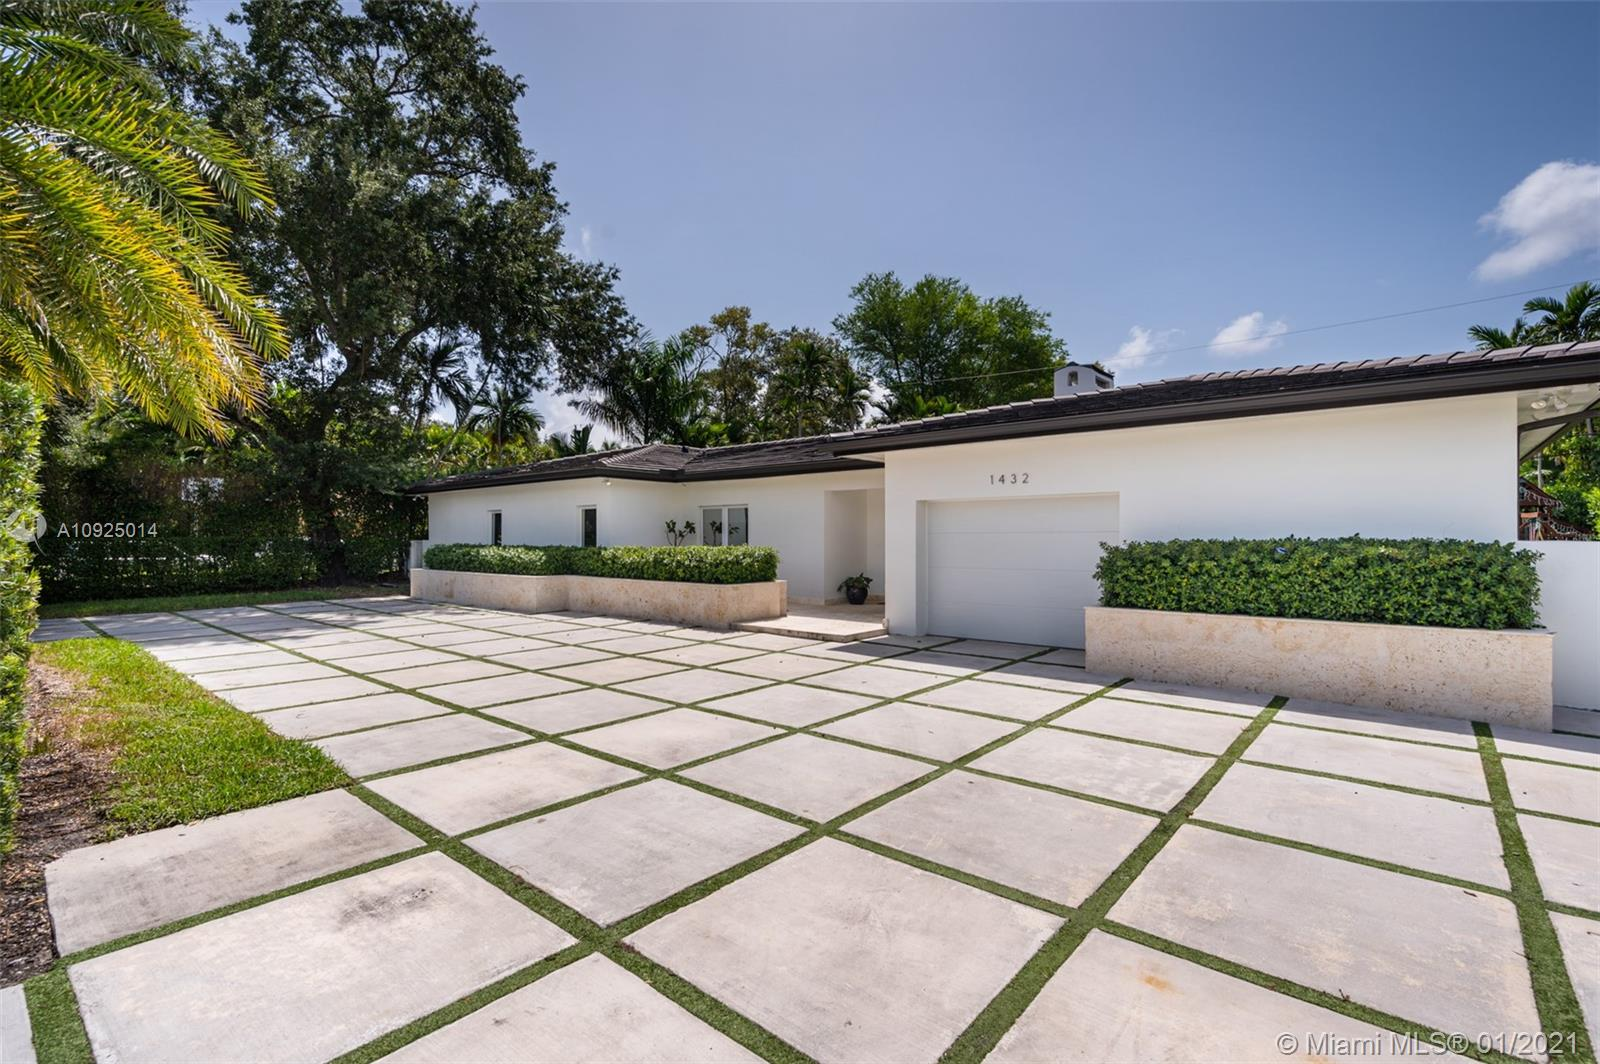 Completely renovated in 2017, this inviting residence boasts a classic contemporary design featuring an open floorplan of 4 beds + staff quarters & 5.5 baths sitting on an 11,000+ sqft lot.  With 4000 sf of clean modern lines and open spaces, lots of natural light, marble throughout, a brand-new roof, 2 new AC units, impact windows, an open eat-in kitchen, spacious bedrooms, luxurious master suite with a walk-in closet, guest suite on the second floor, and a working fireplace. This home is a must see as it is perfectly located in the heart of Coral Gables, near the Riviera Country Club with easy access to highways and near great schools. Surrounded by lush landscaping, this home is great for indoor and outdoor entertaining with a new pool and outdoor shower enclosed in artificial grass.